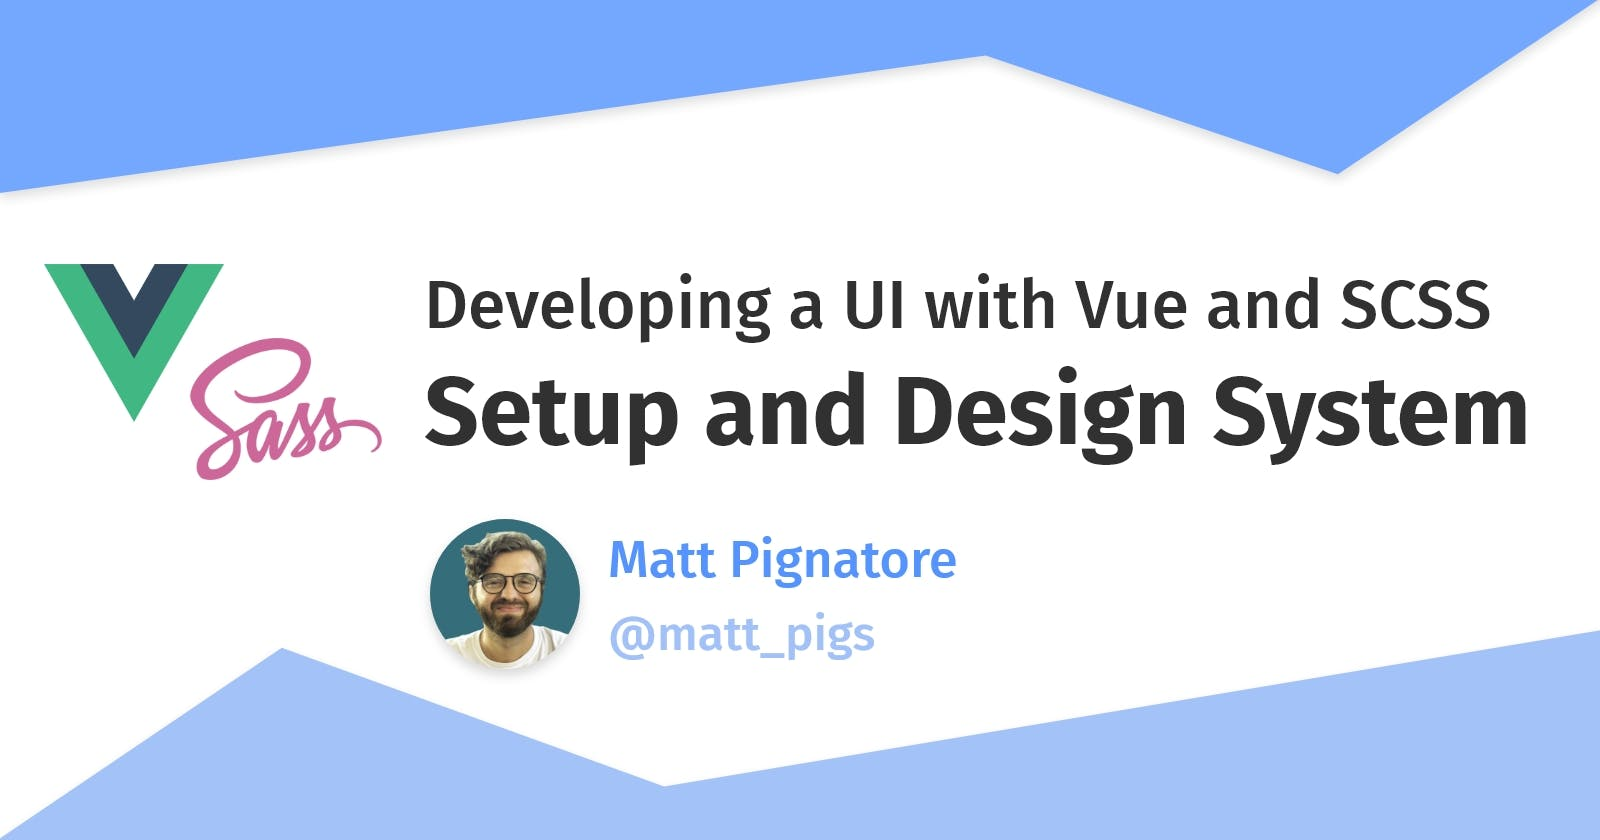 Developing a UI with Vue, Part 2: Project Setup and Design System